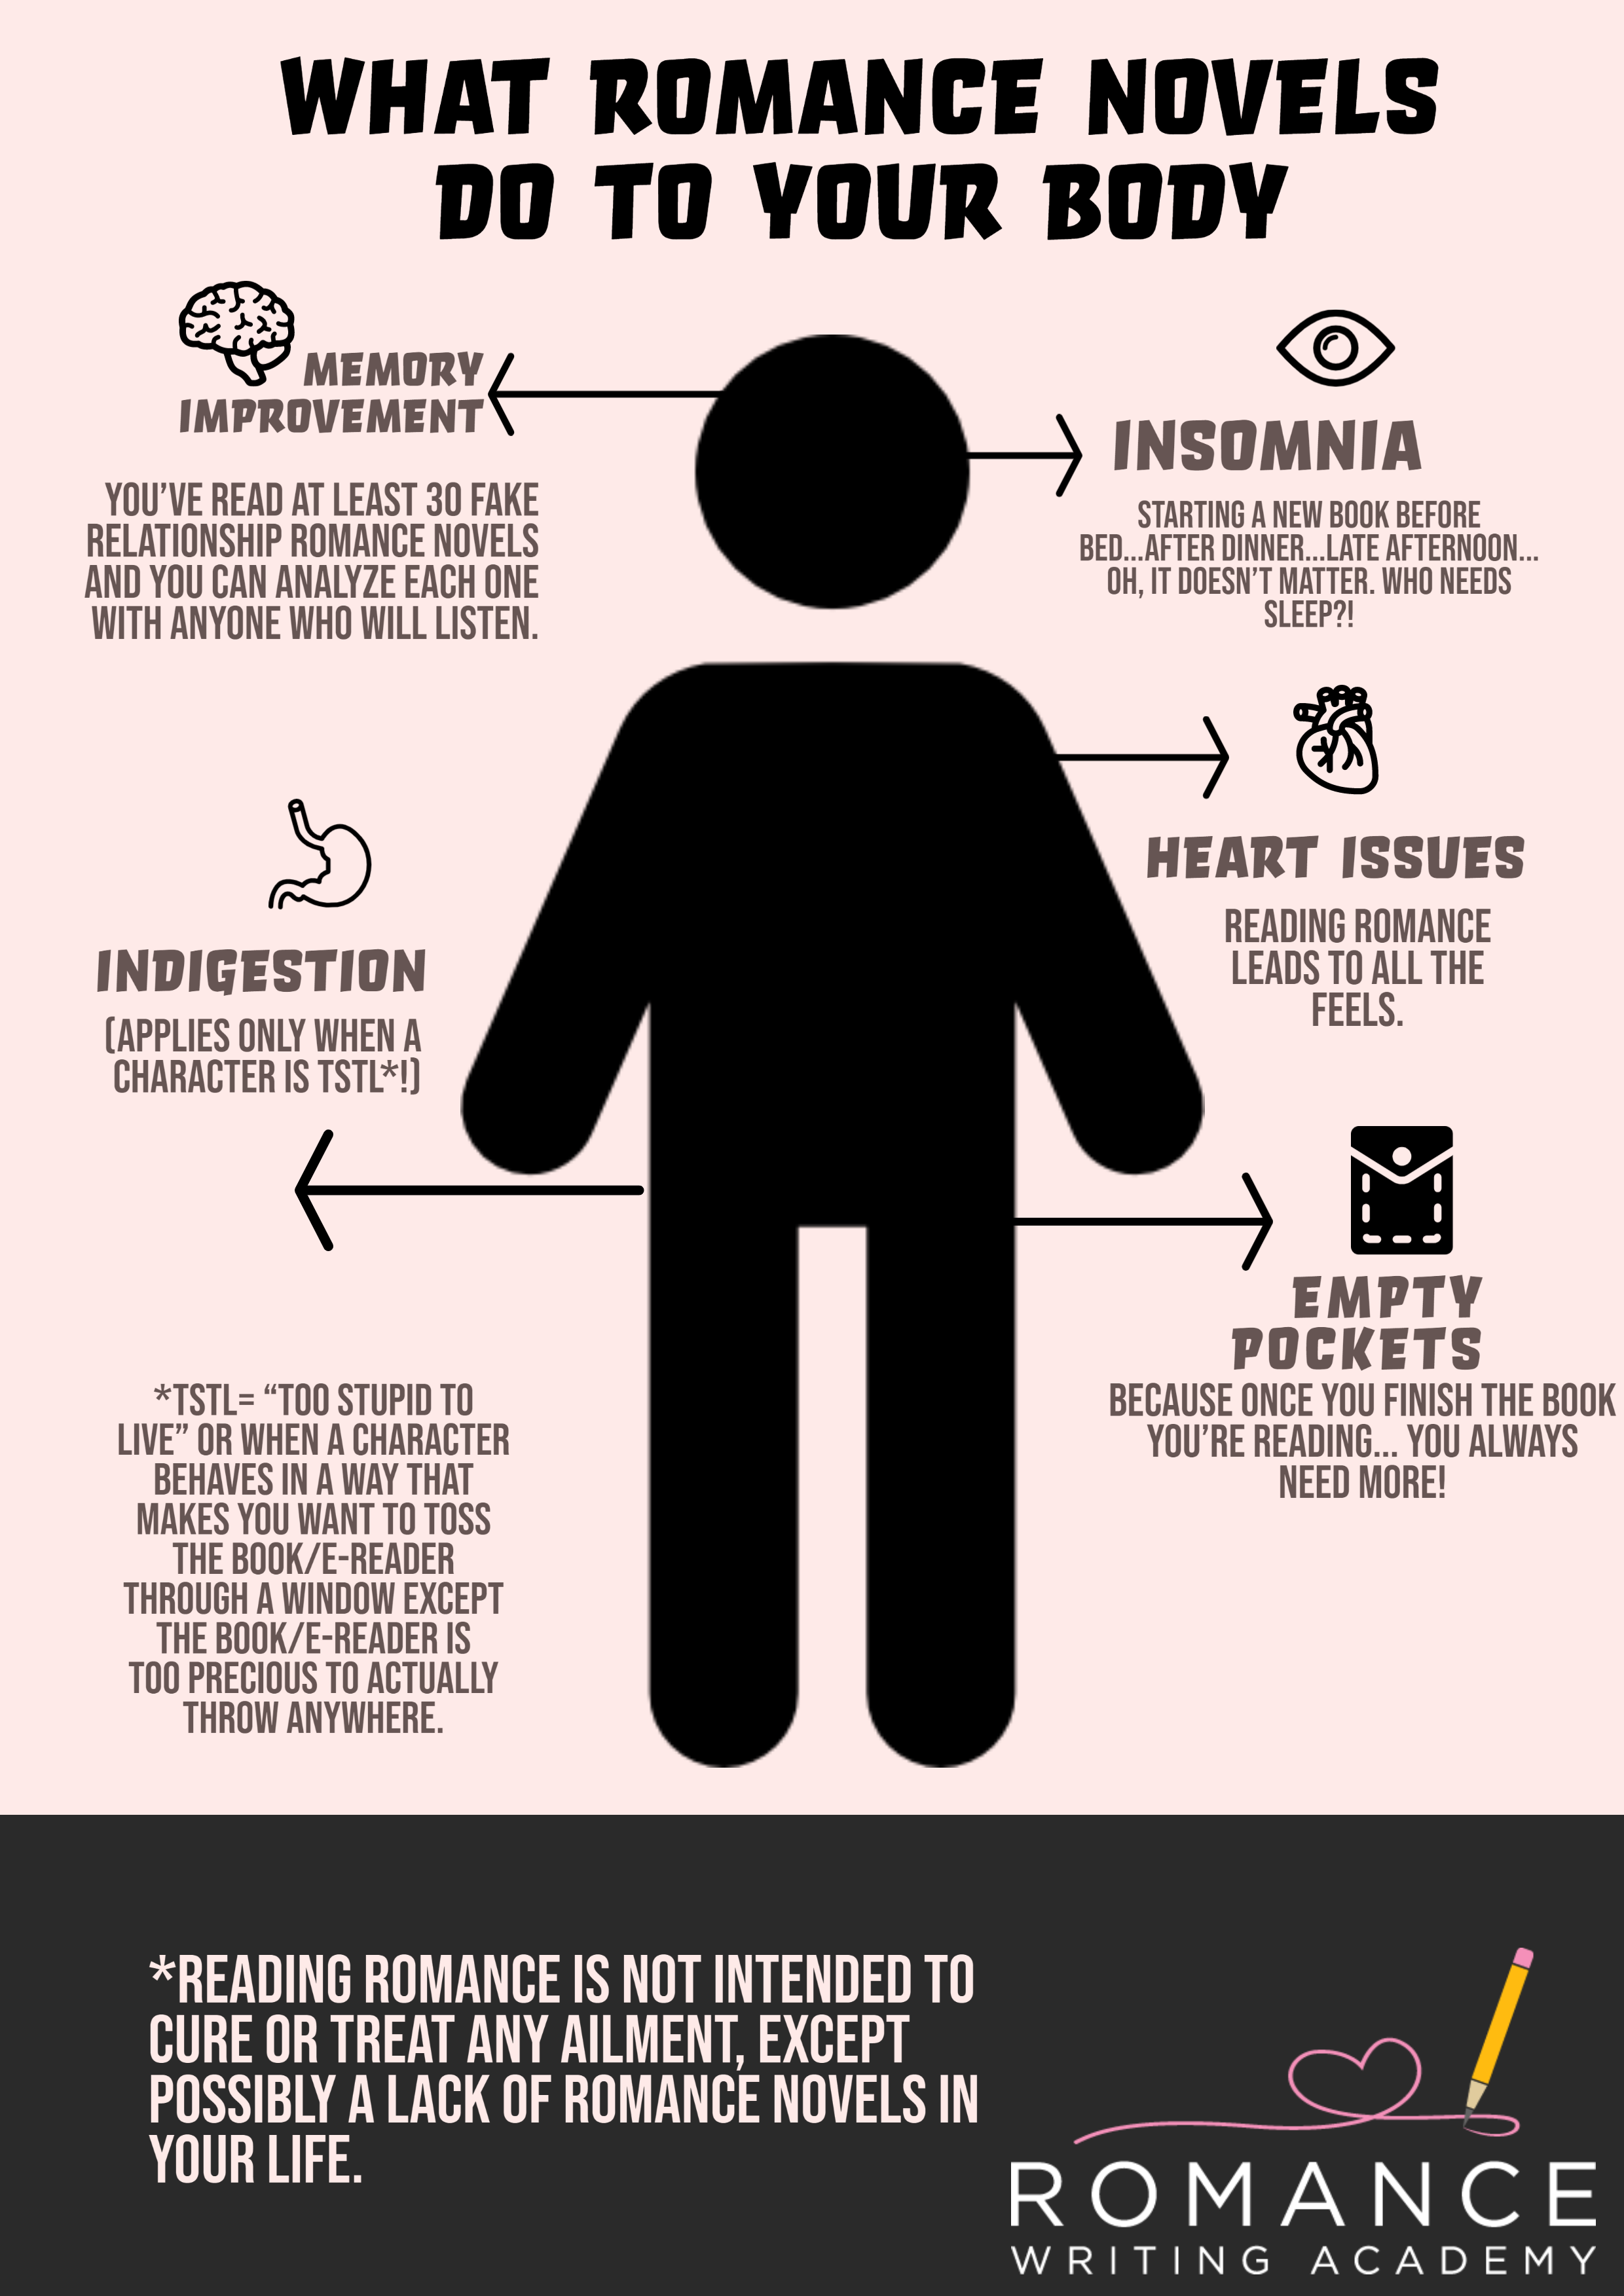 What Romance Novels do to your Body [Infographic]